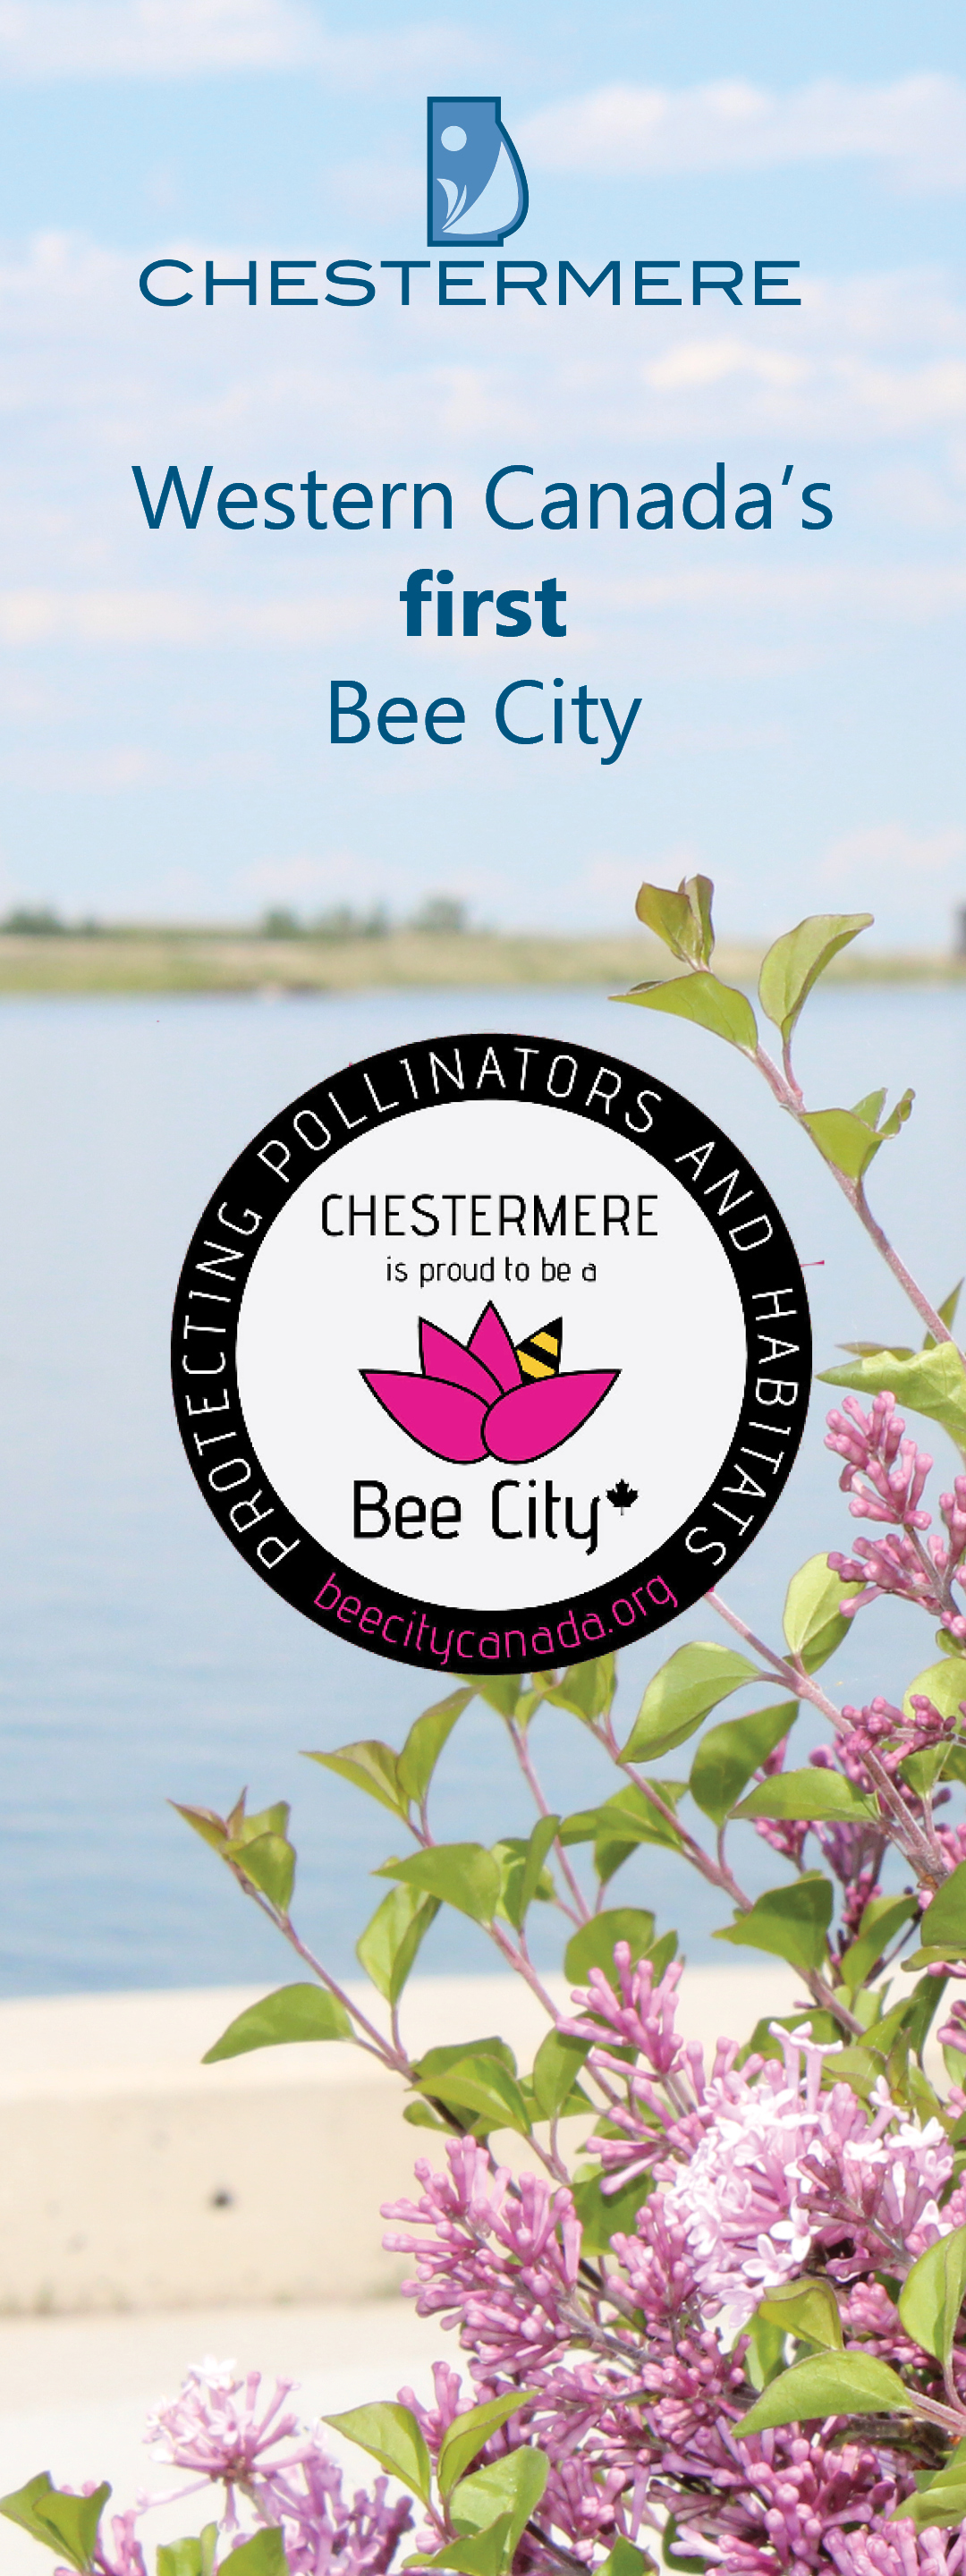 Bee City website2.jpg